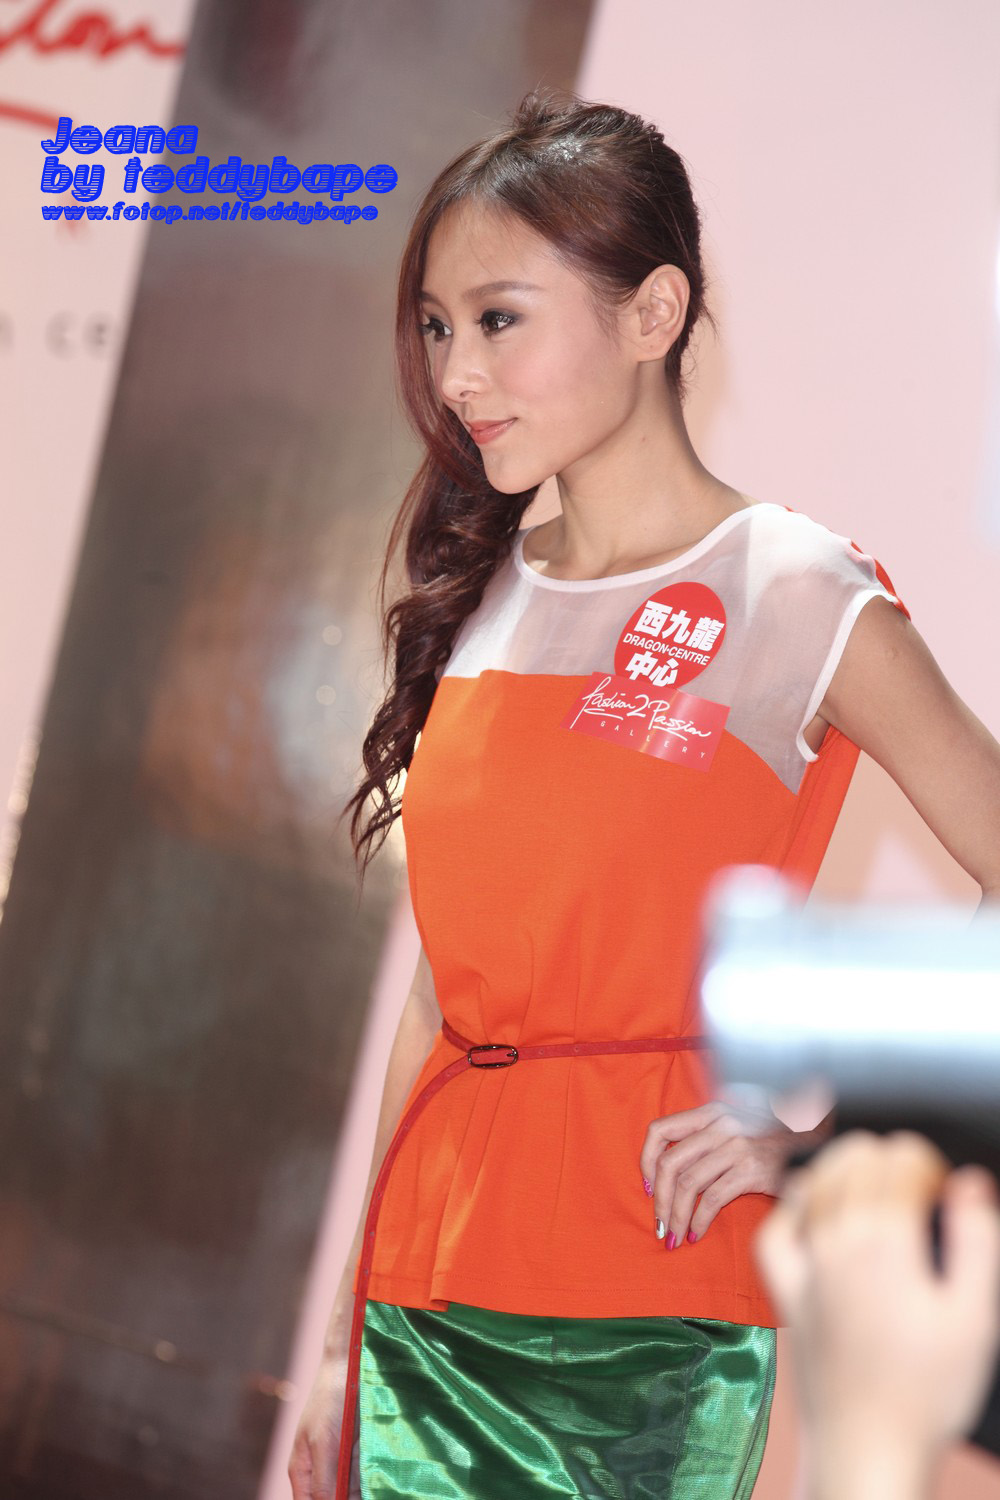 ... & Apple Mall Hot And Splashy Fashion Show」(21.8.2011